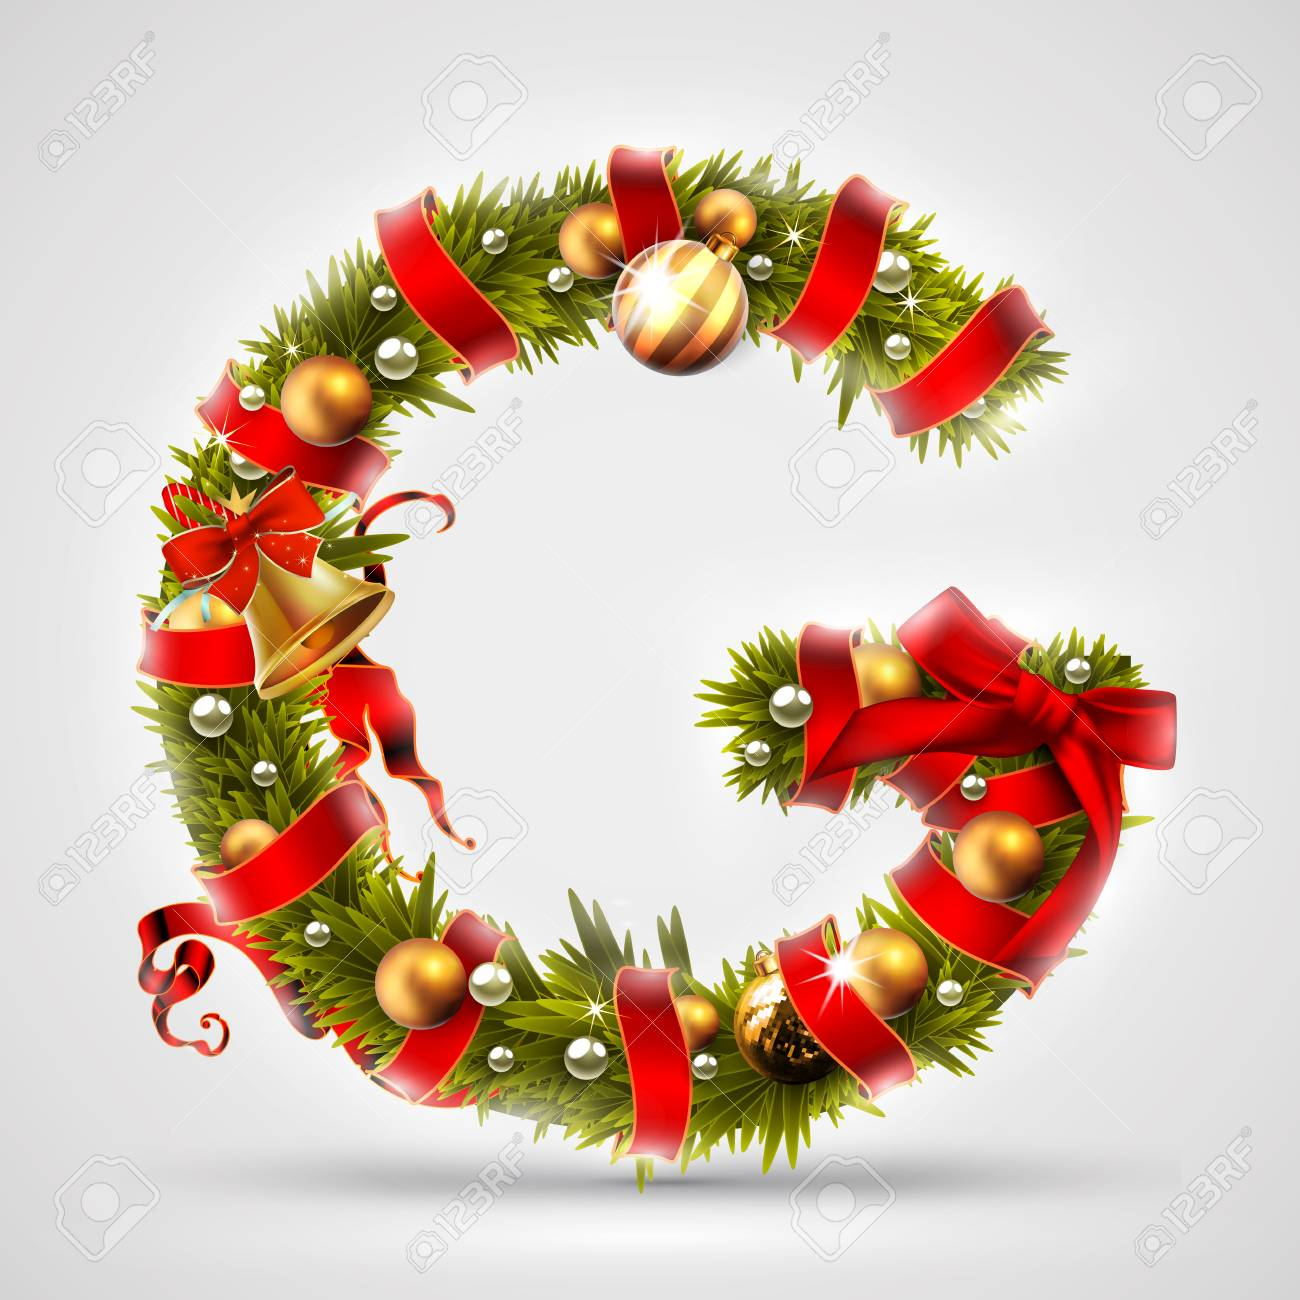 Christmas Font Letter G Of Christmas Tree Branches Decorated